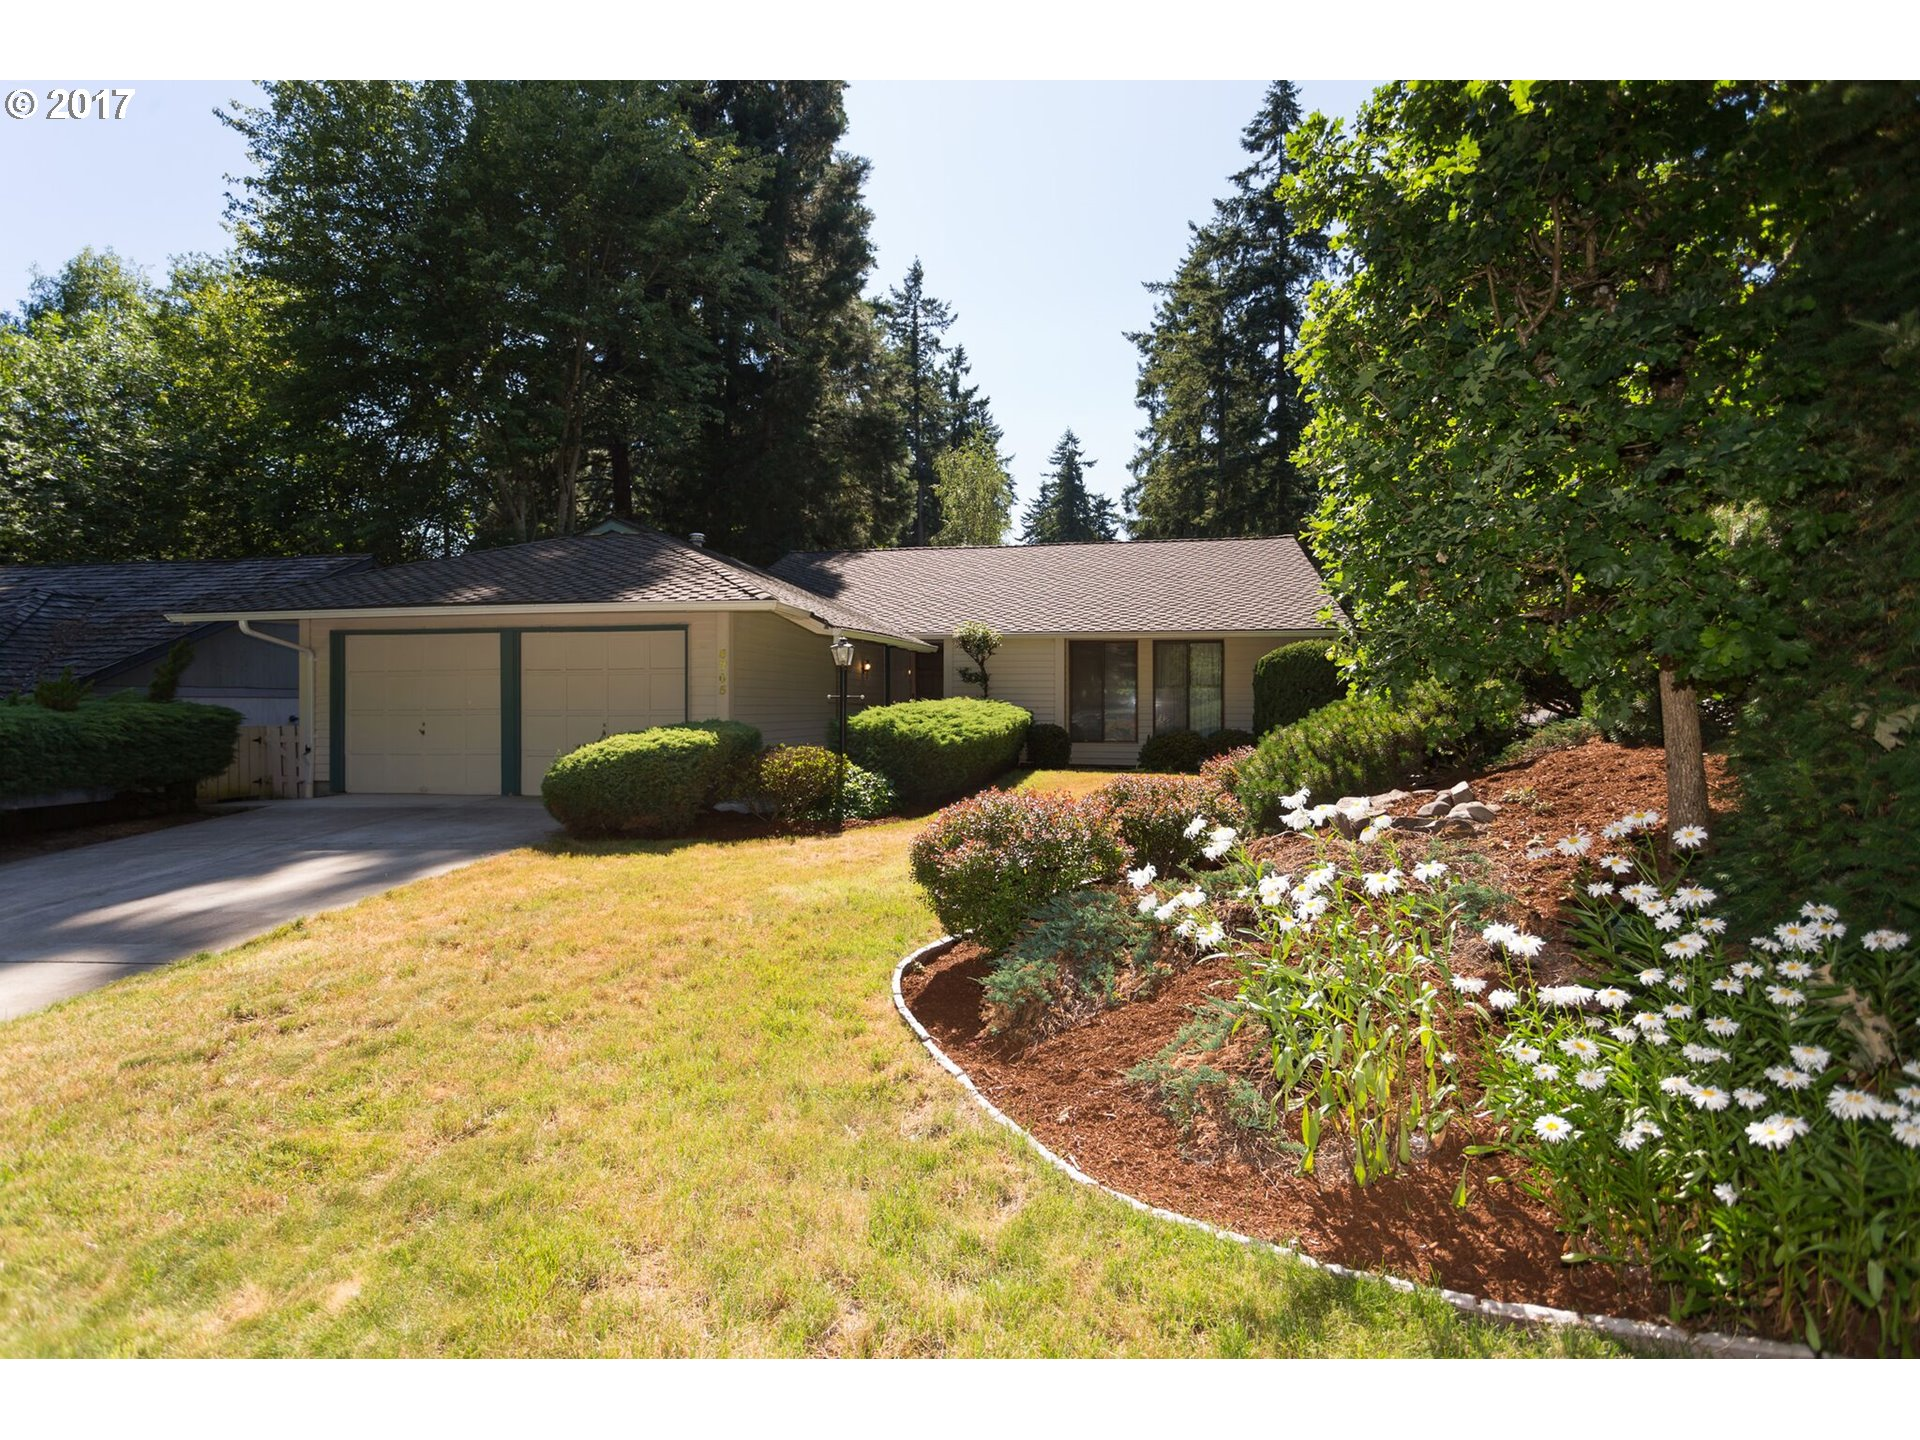 LIGHT AND BRIGHT SINGLE LEVEL ON CORNER LOT IN POPULAR FOUR SEASONS NEIGHBORHOOD WITH NEWER PRESIDENTIAL ROOF.